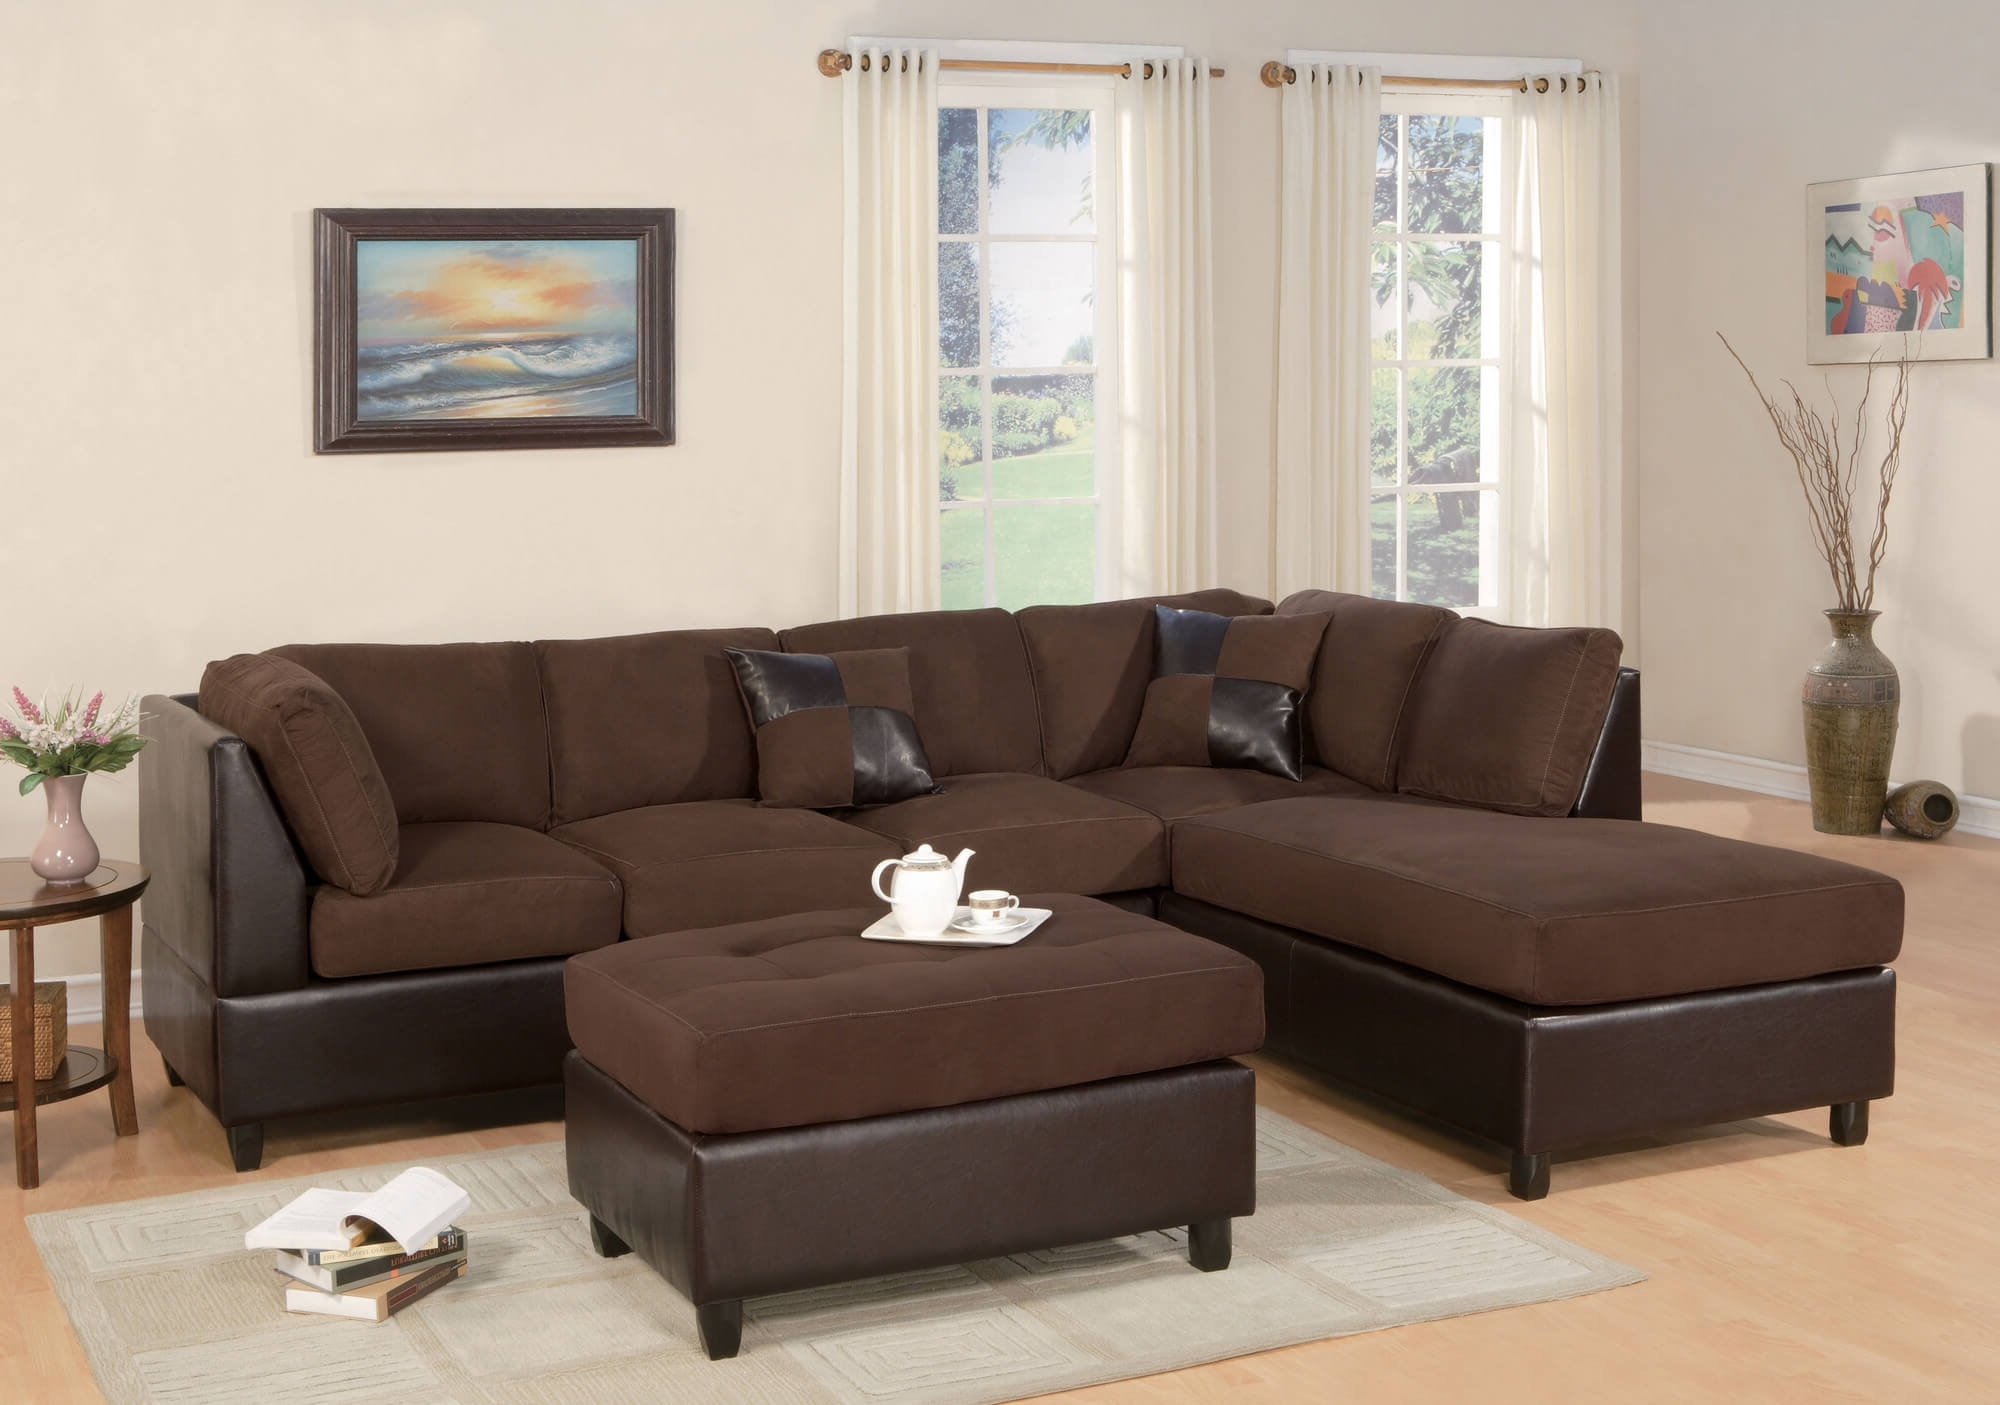 Chocolate Brown Sectional Sofas Pertaining To 2019 Epic Chocolate Brown Sectional Sofas 65 In Light Blue Sectional (View 7 of 20)